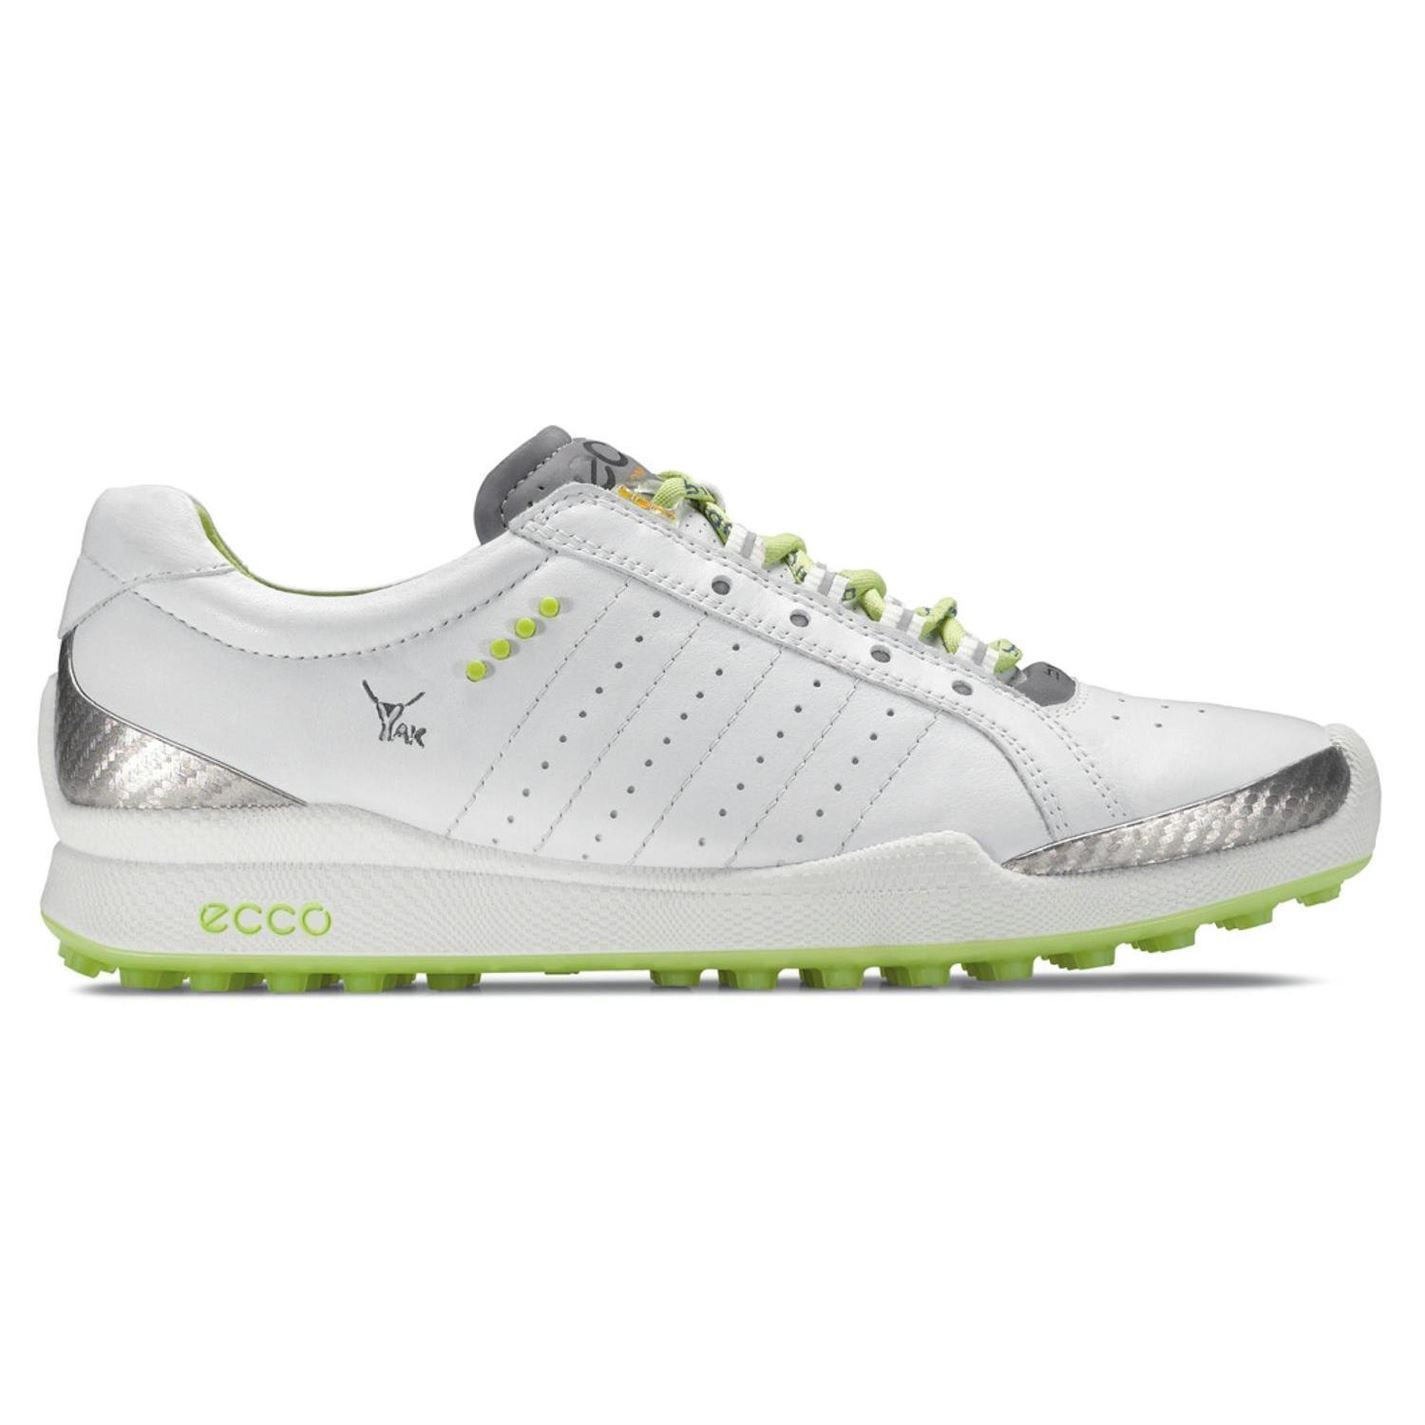 ecco womens biom hybrid golf shoes lace up sports